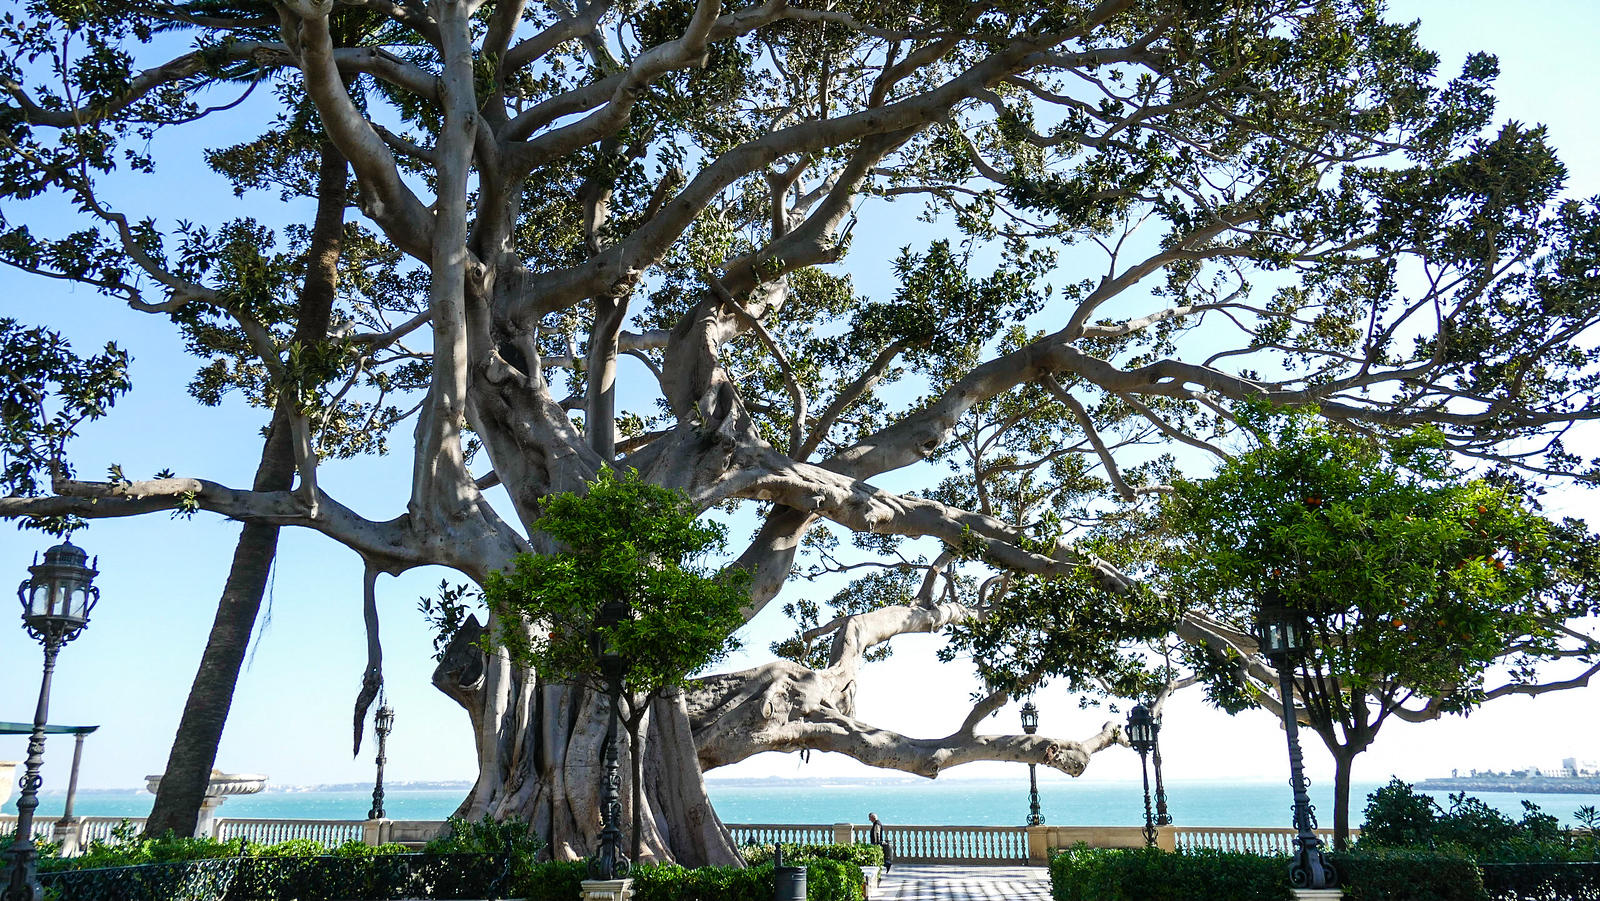 A huge banyon tree offers a shady place to rest on a Cadiz walking tour.